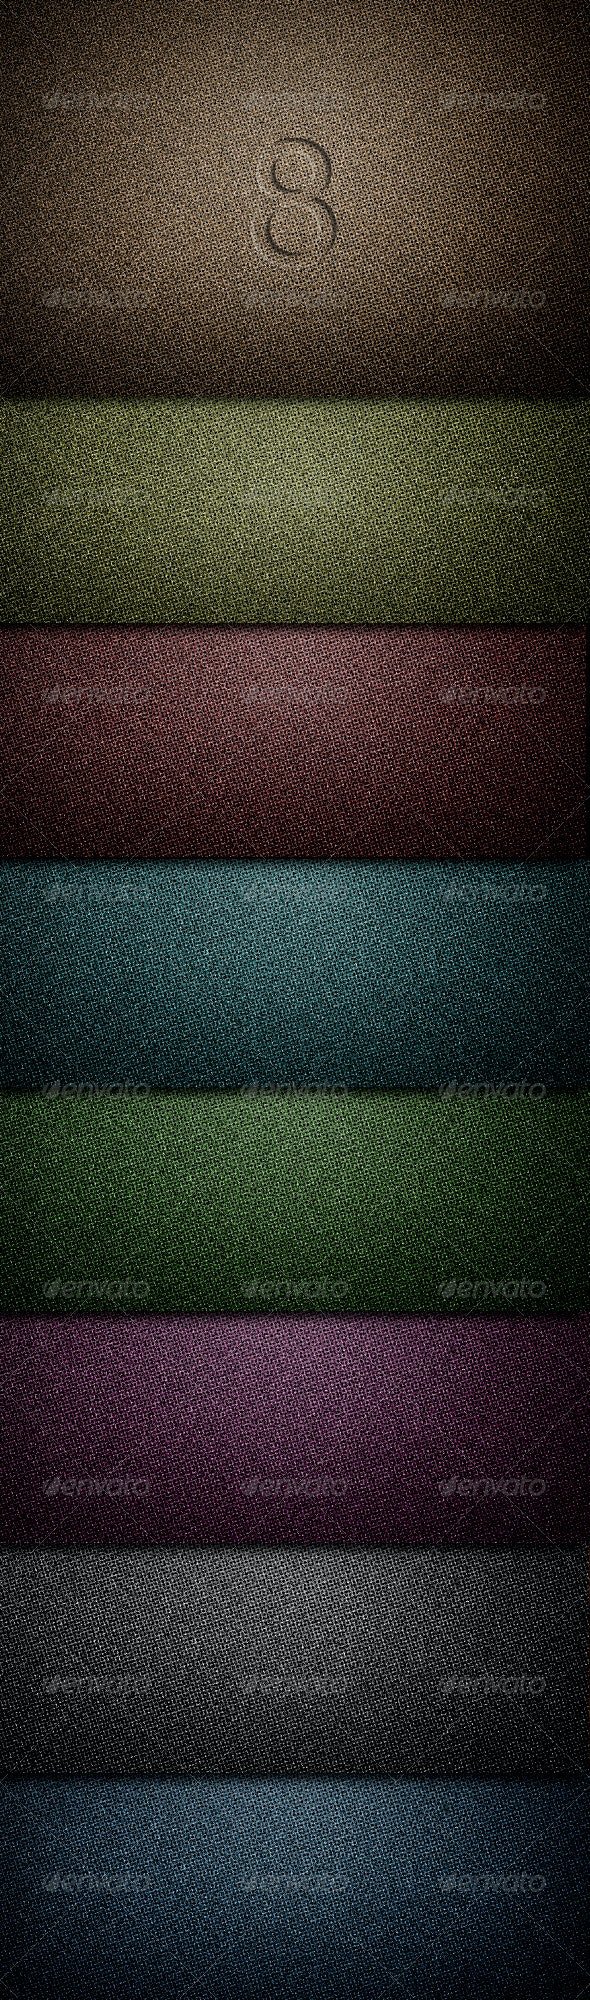 8 Hi-res Textured Backgrounds - Backgrounds Graphics